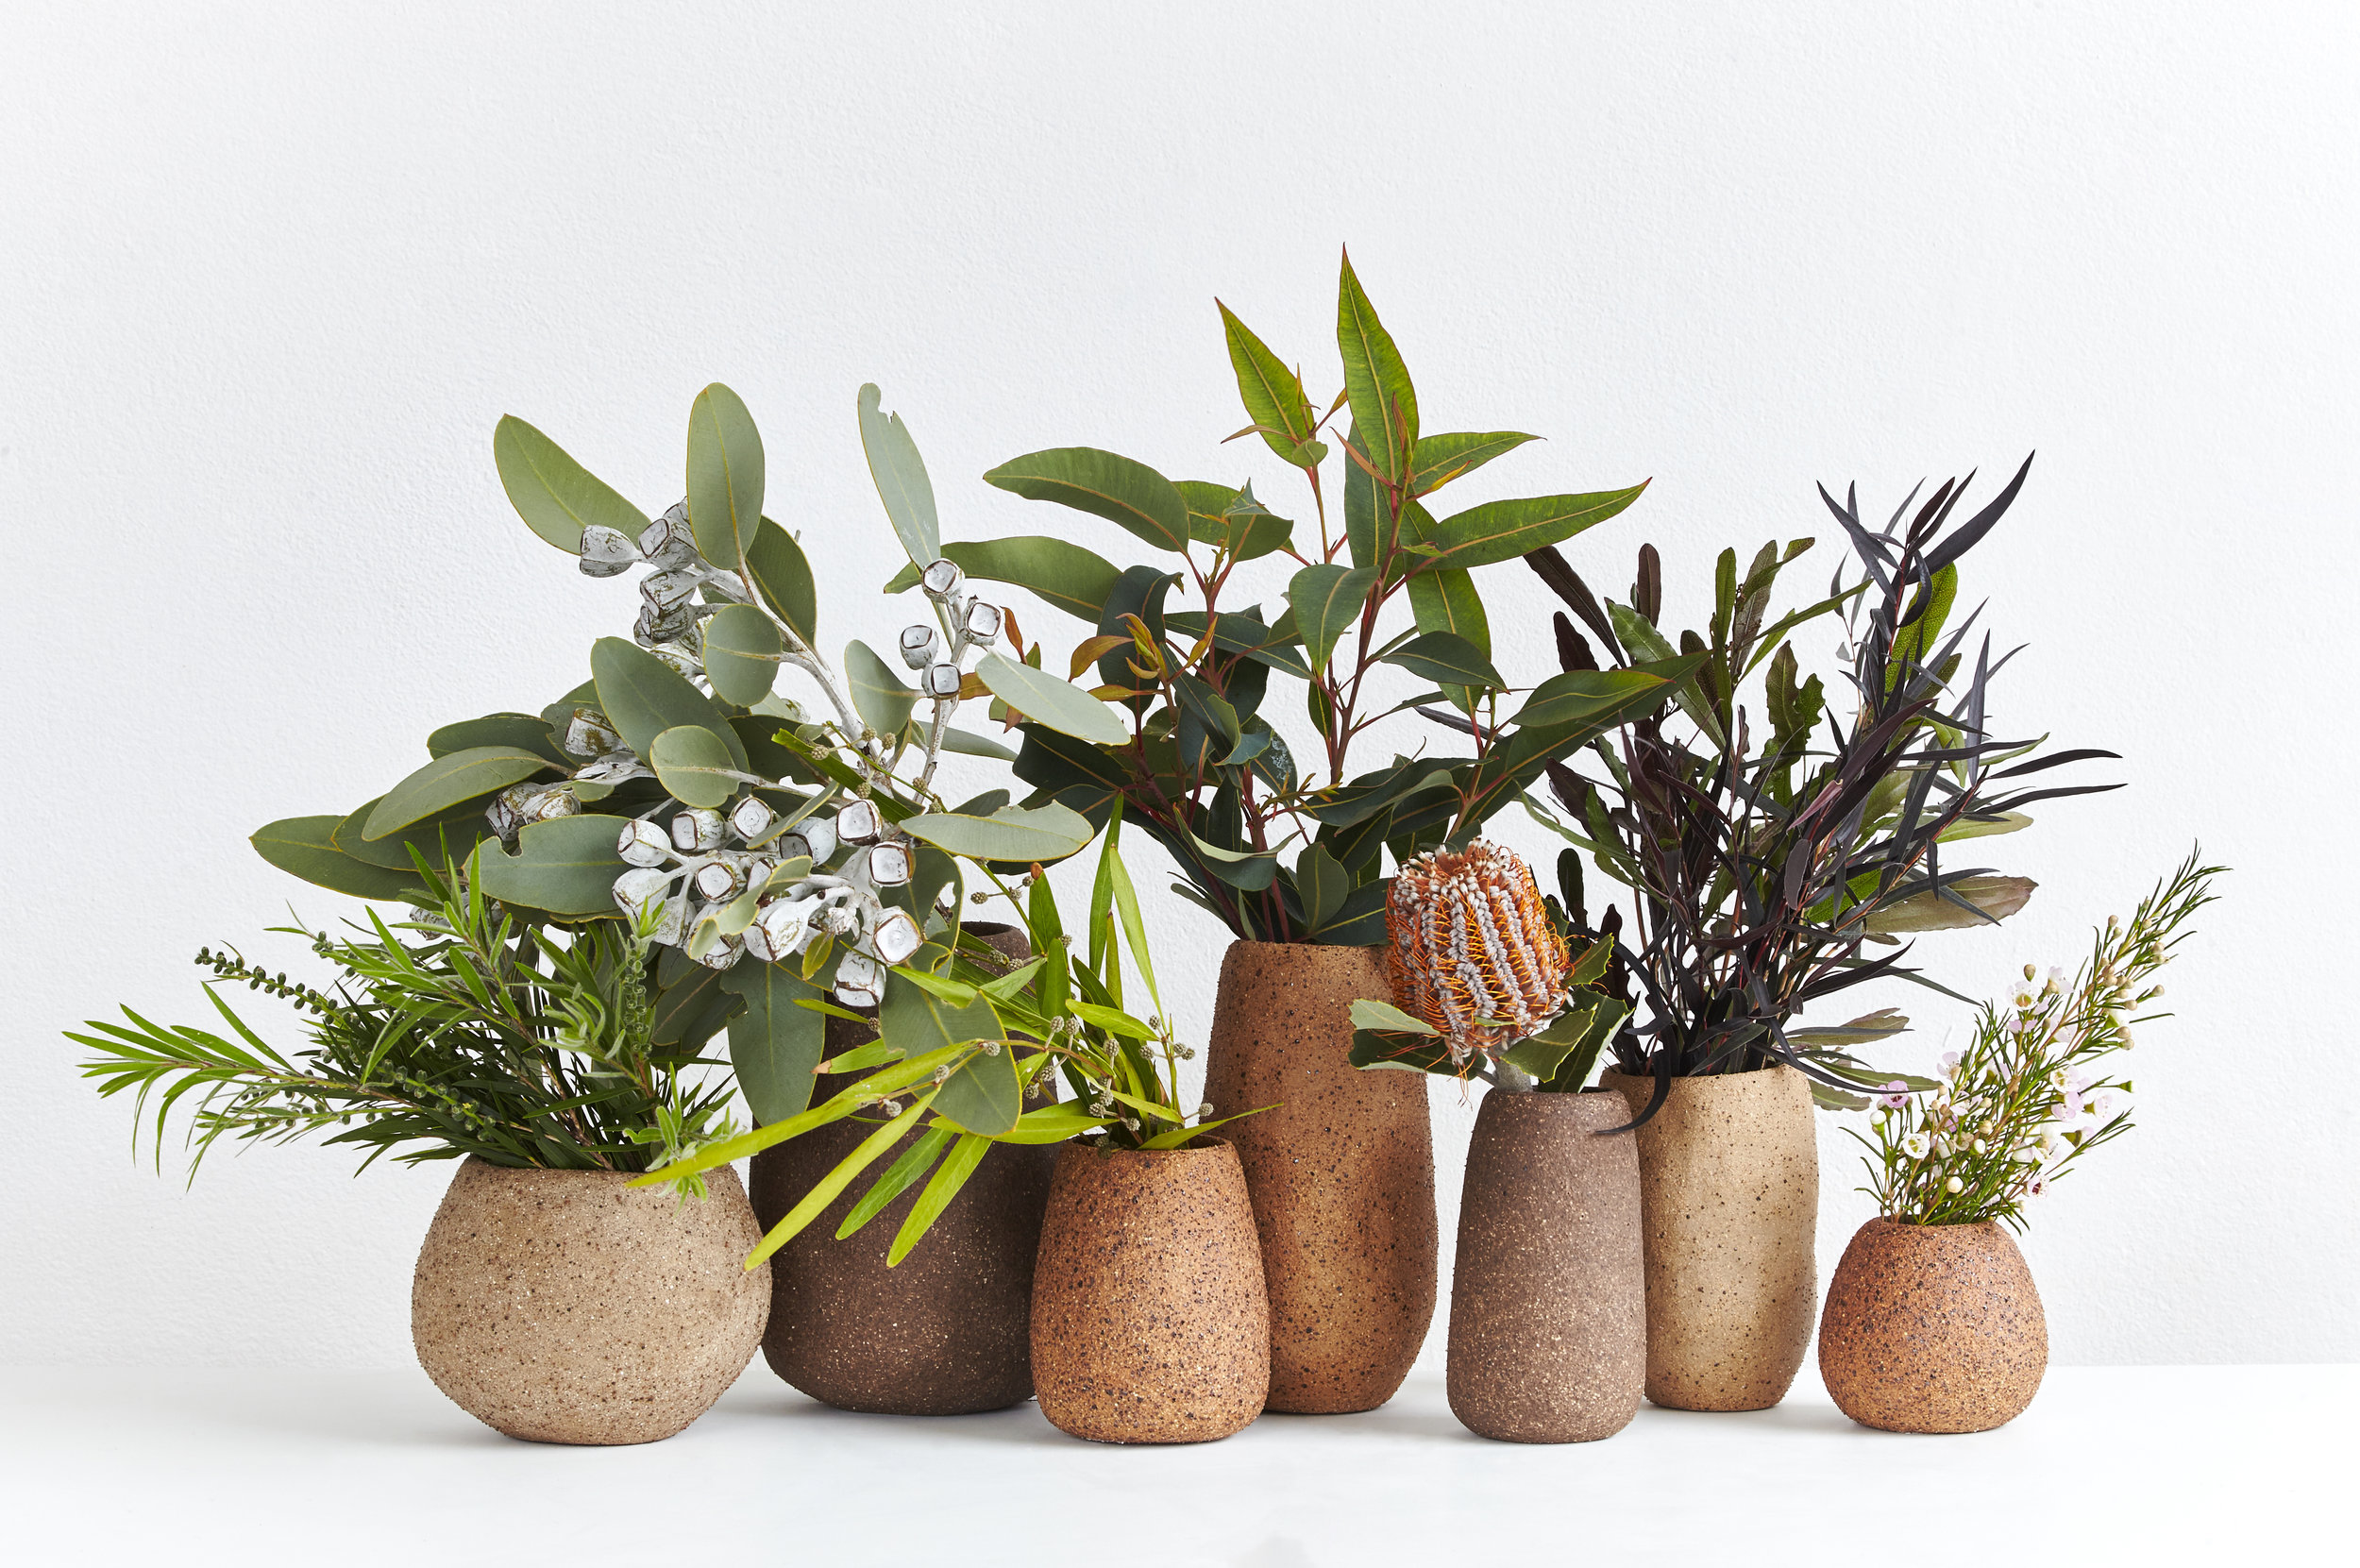 Sweet Nature.Sydney Landscape. 2016. Australian clay and local plants.